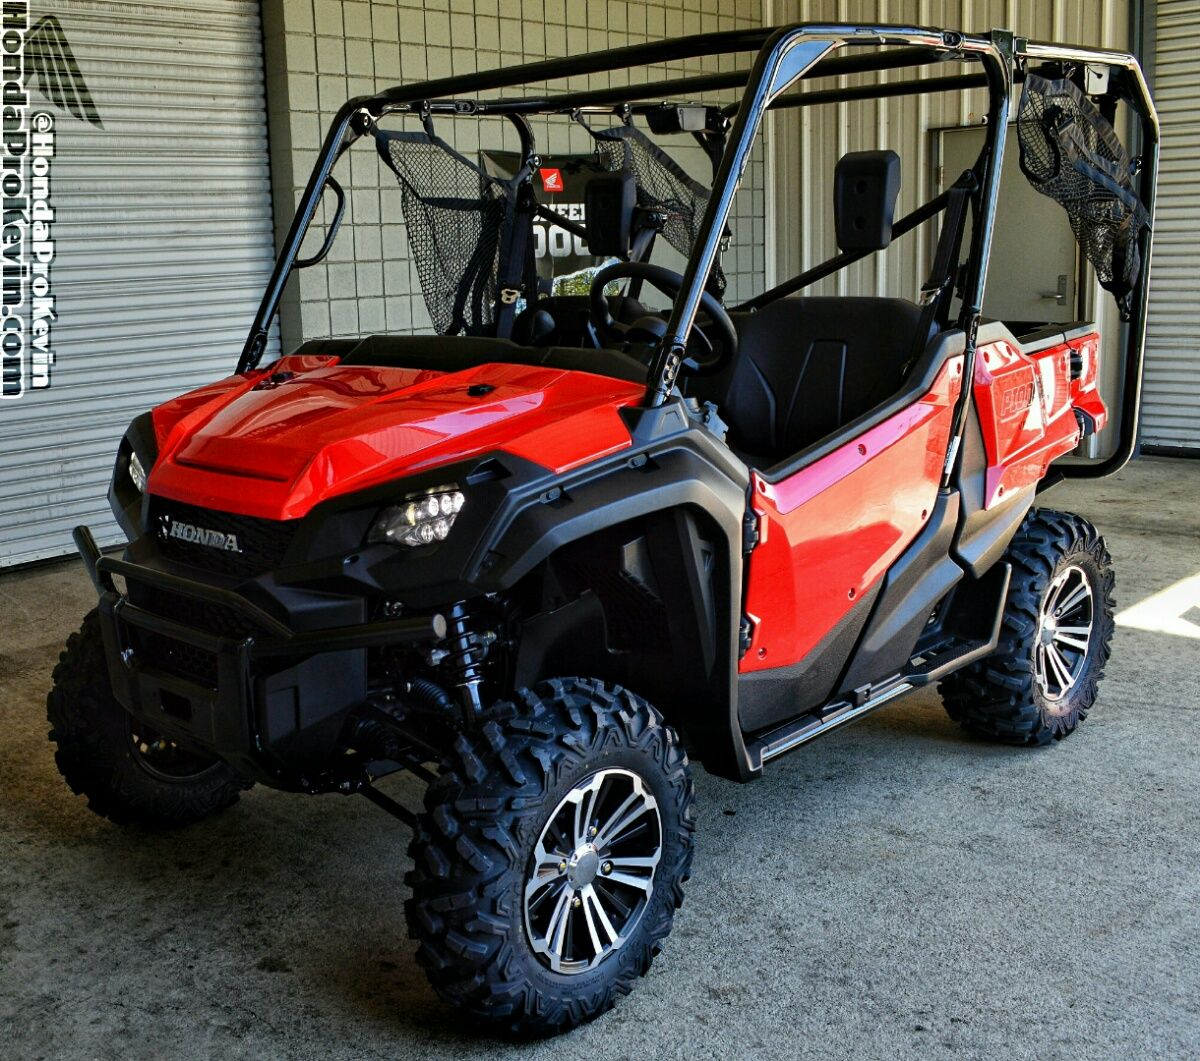 2016 Pioneer 1000 5 Ride Review All New Honda Sxs Utv Side By Side Atv Honda Pro Kevin Honda Pioneer 1000 2016 Honda Honda